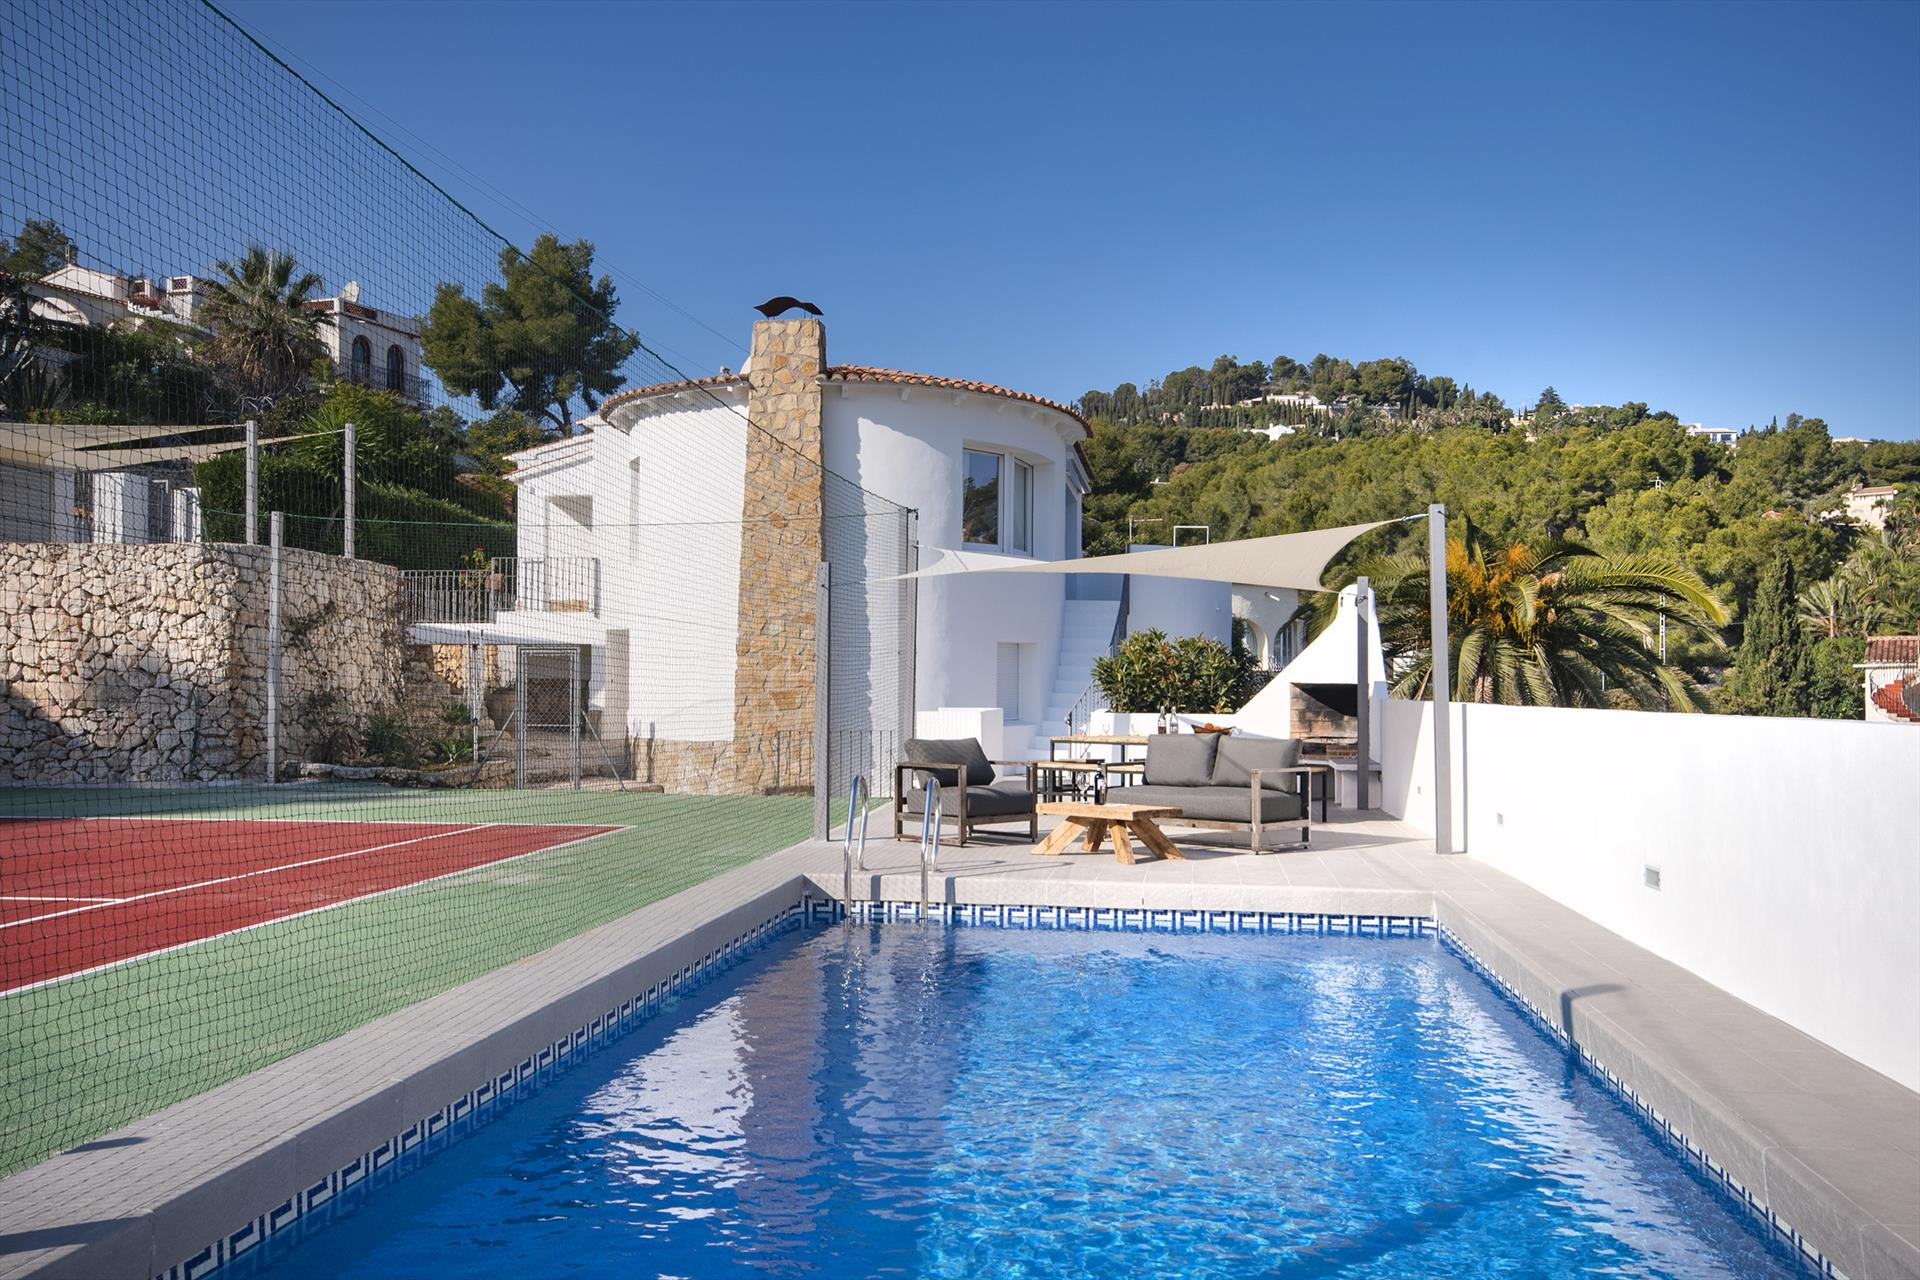 Sara 4, Modern and cheerful villa in Benissa, on the Costa Blanca, Spain  with private pool for 4 persons.....